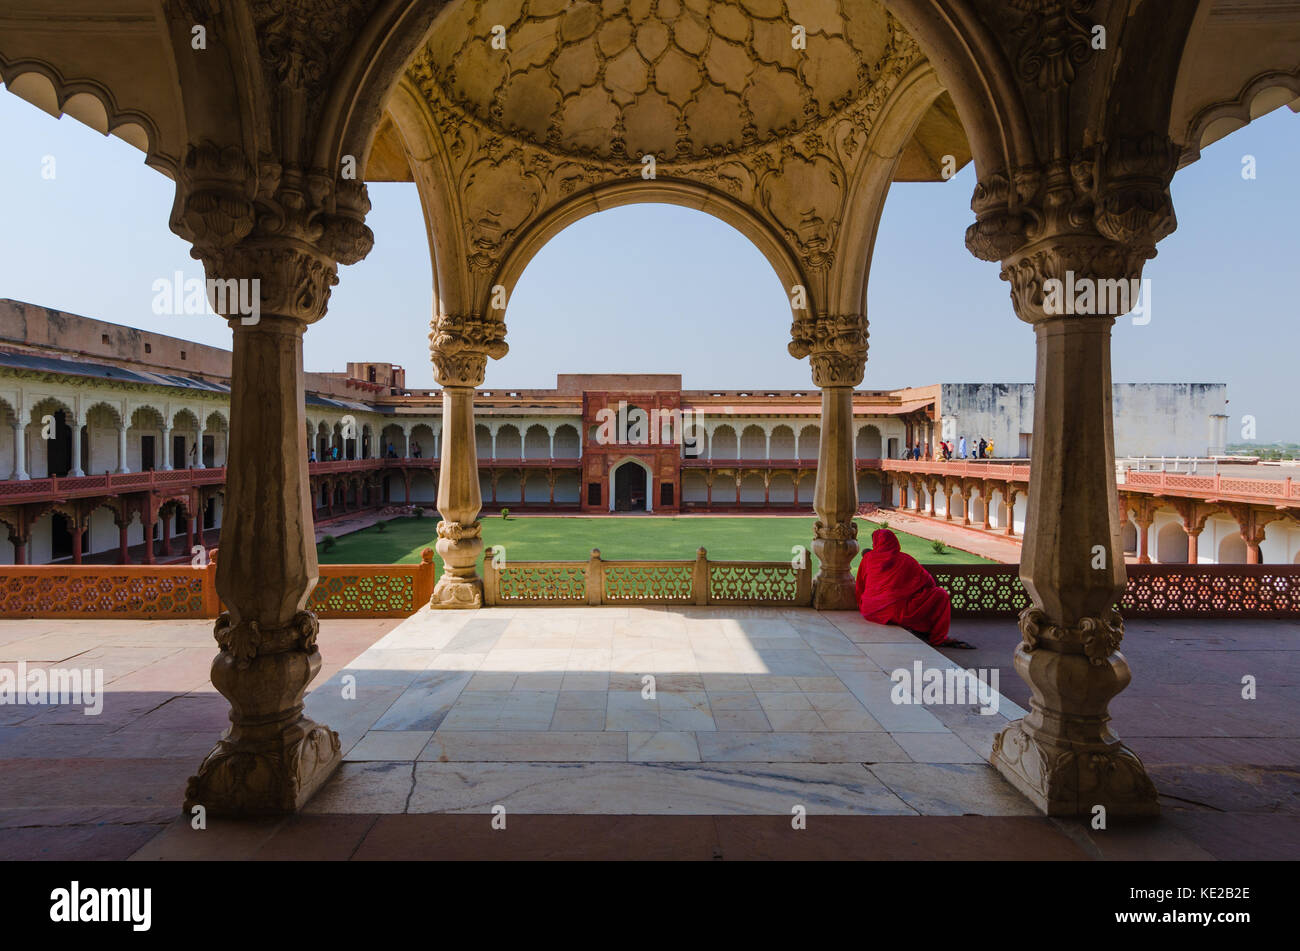 AGRA, INDIA - 4 MAY 2015: A woman drape din a red saree is sitting under the loggia facing the Jahangiri Mahal courtyard - Stock Image